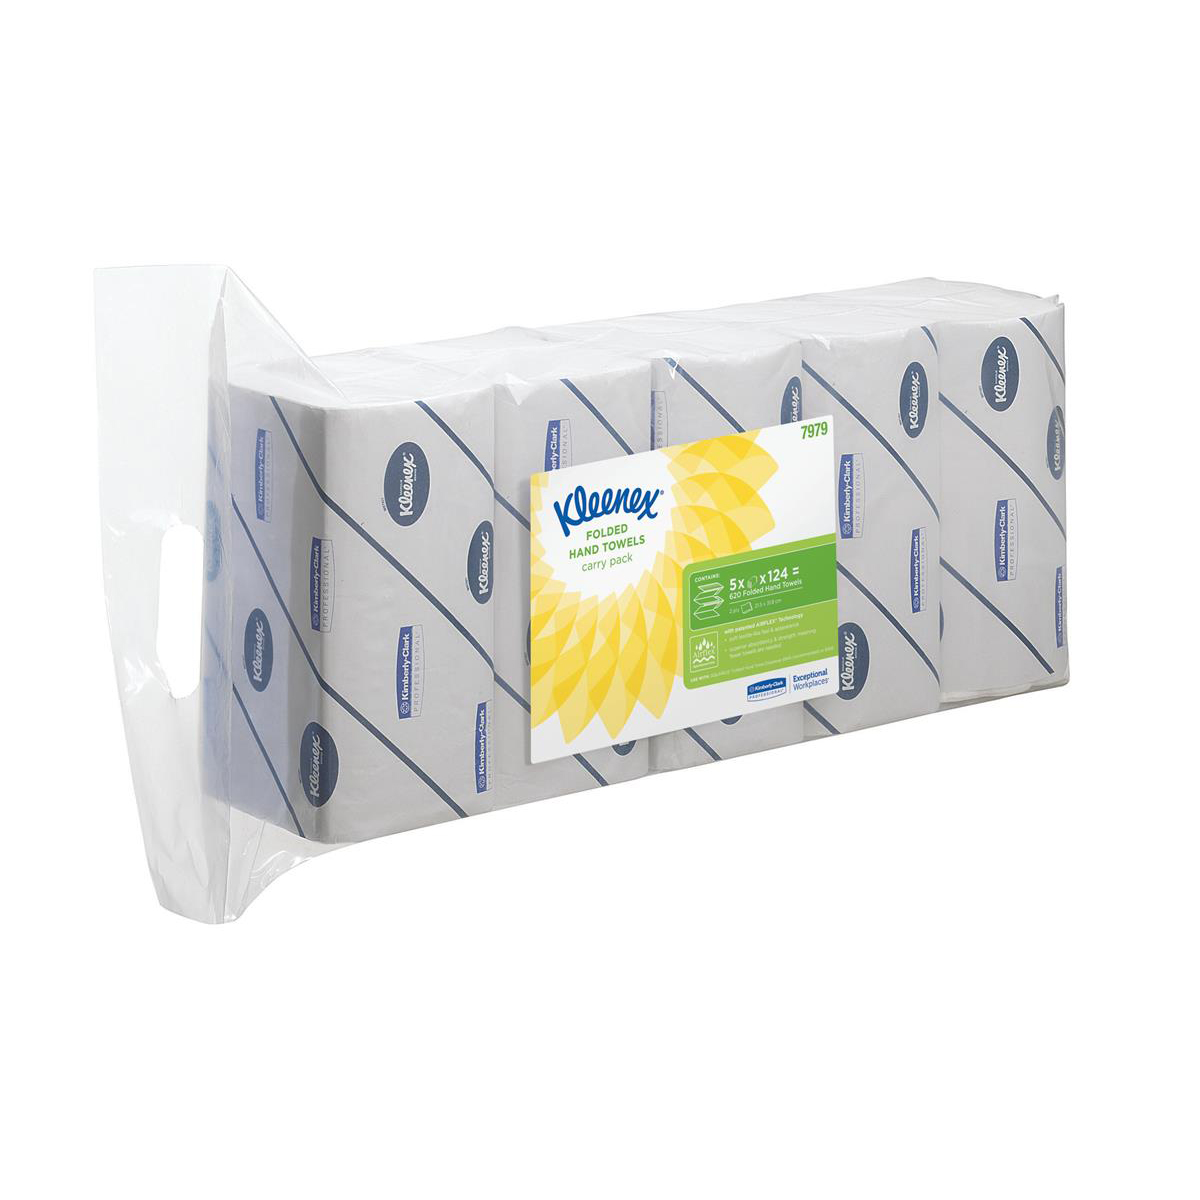 Kleenex Ultra Hand Towels 2-ply 215x315mm 124 Towels per Sleeve White Ref 7979 [Pack 5]